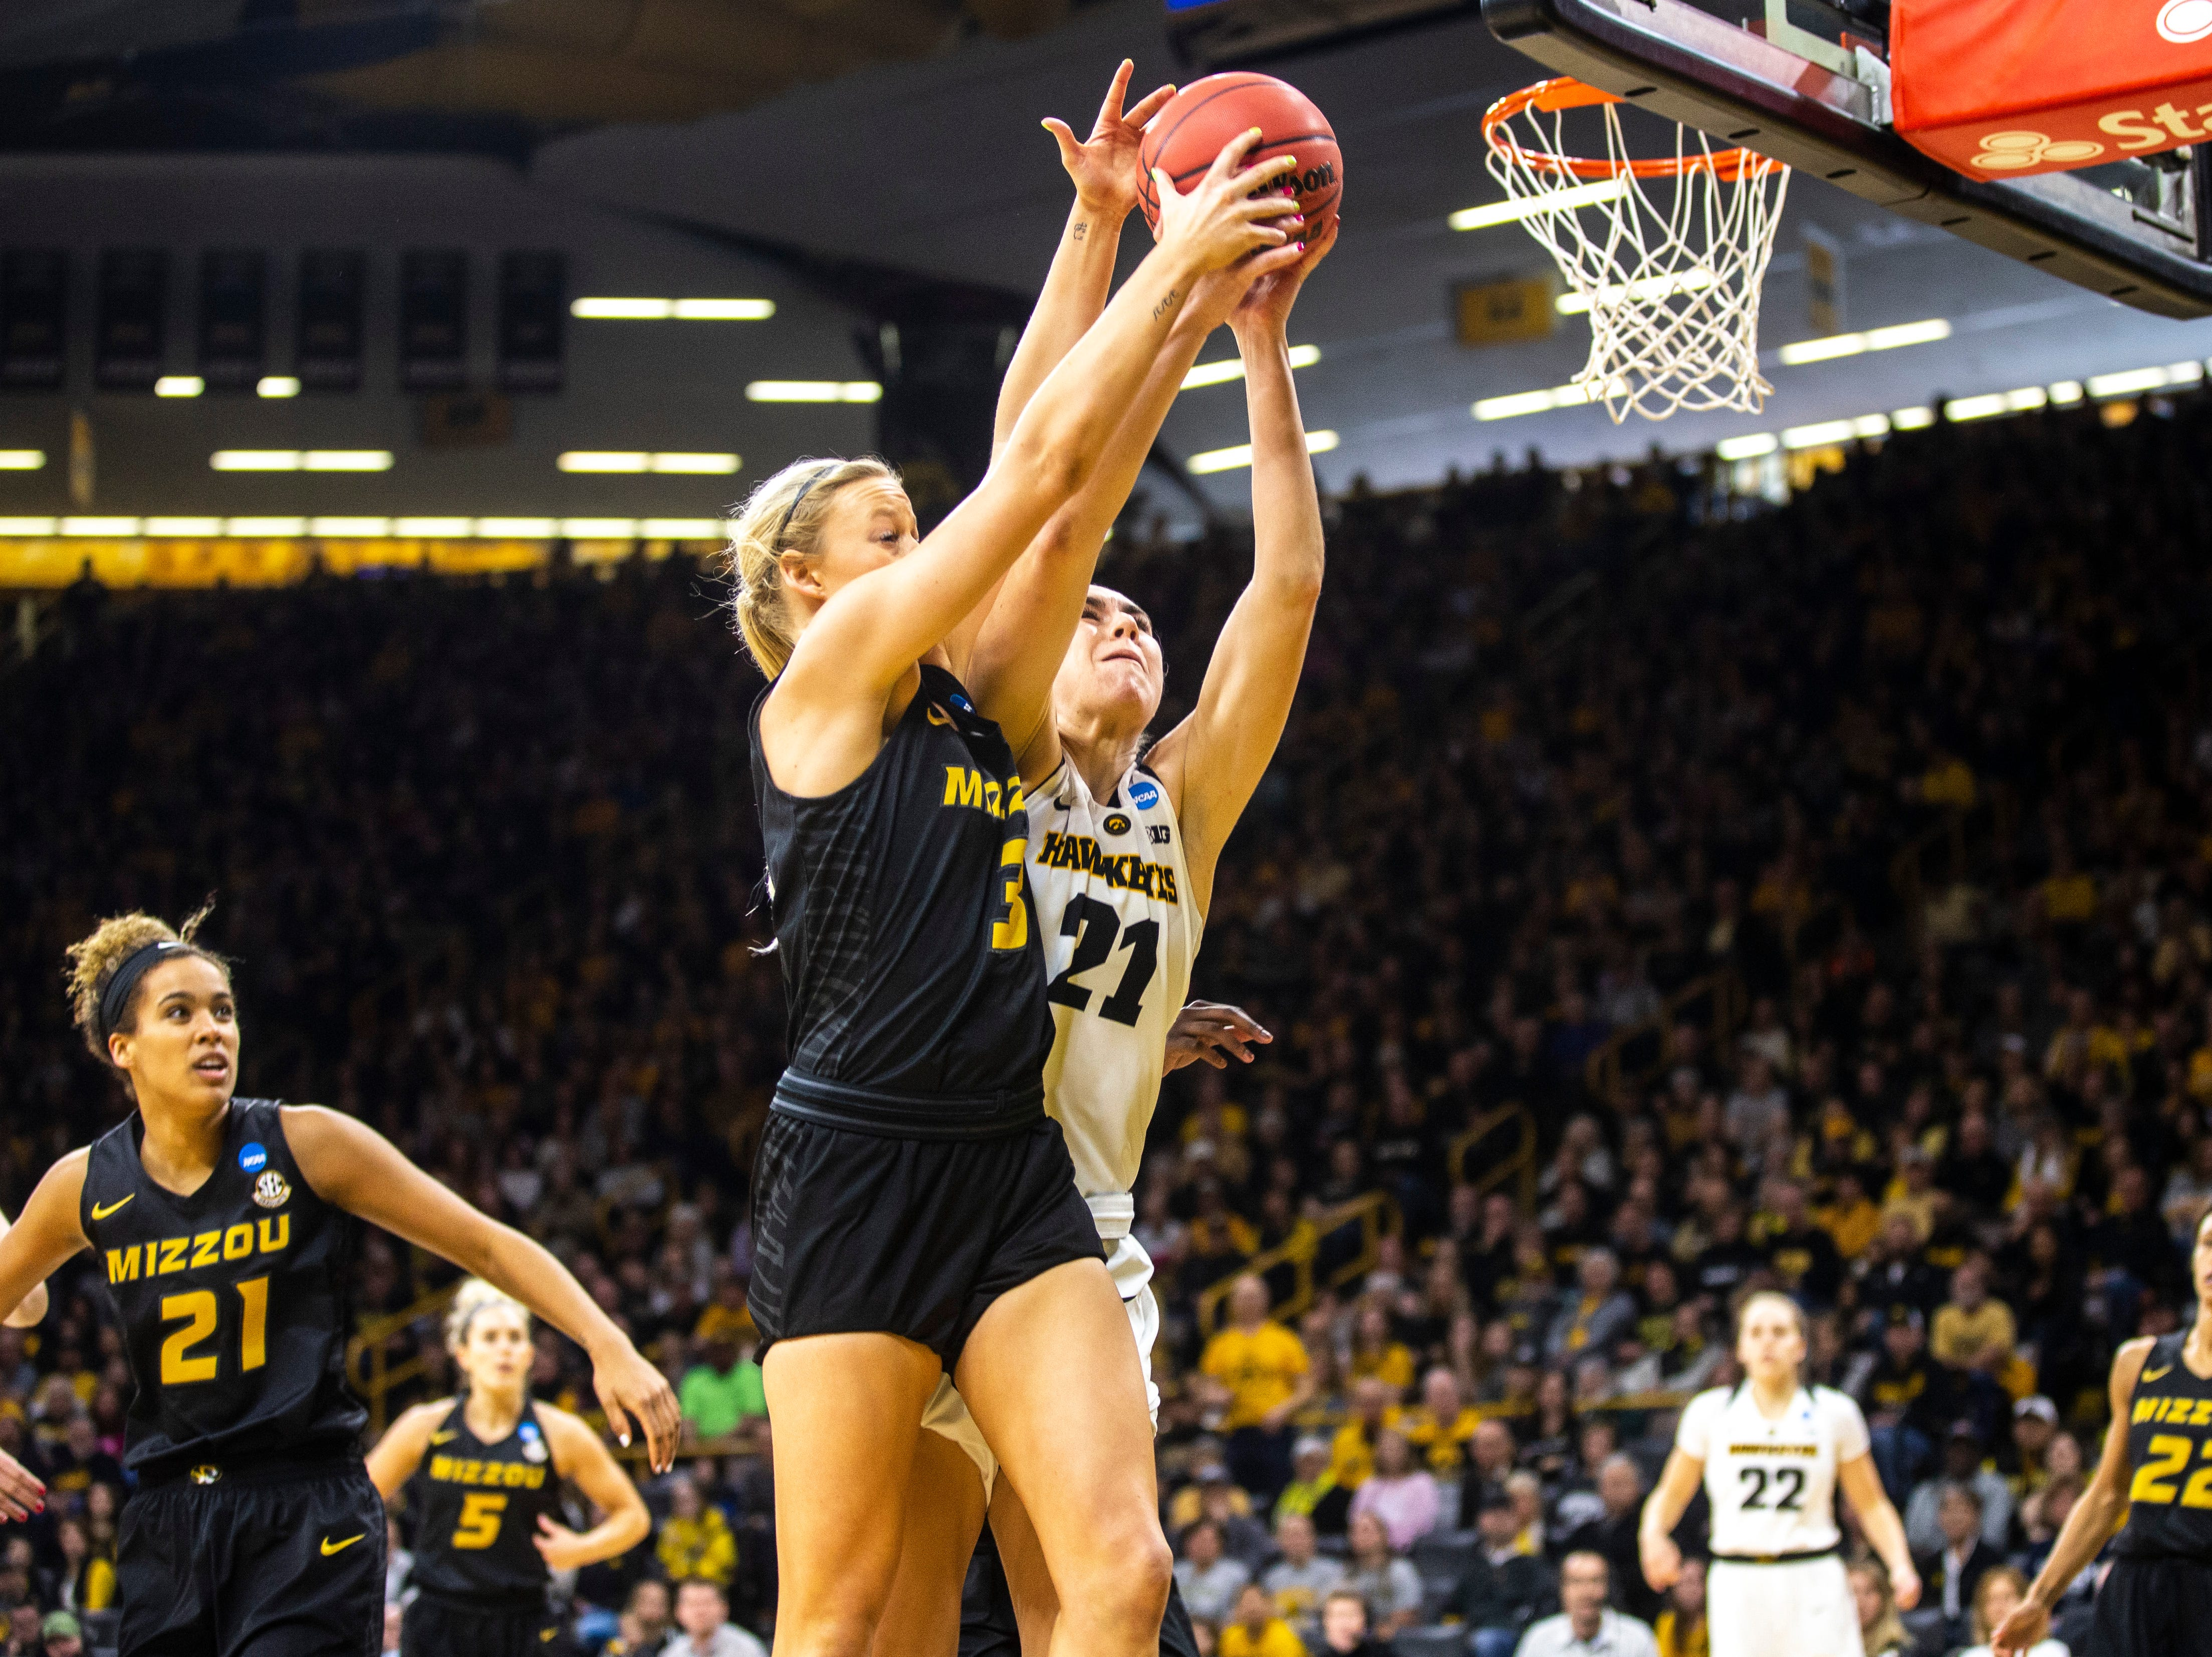 Iowa forward Hannah Stewart (21) goes for a rebound against Missouri guard Sophie Cunningham (3) during a NCAA women's basketball tournament second-round game, Sunday, March 24, 2019, at Carver-Hawkeye Arena in Iowa City, Iowa.